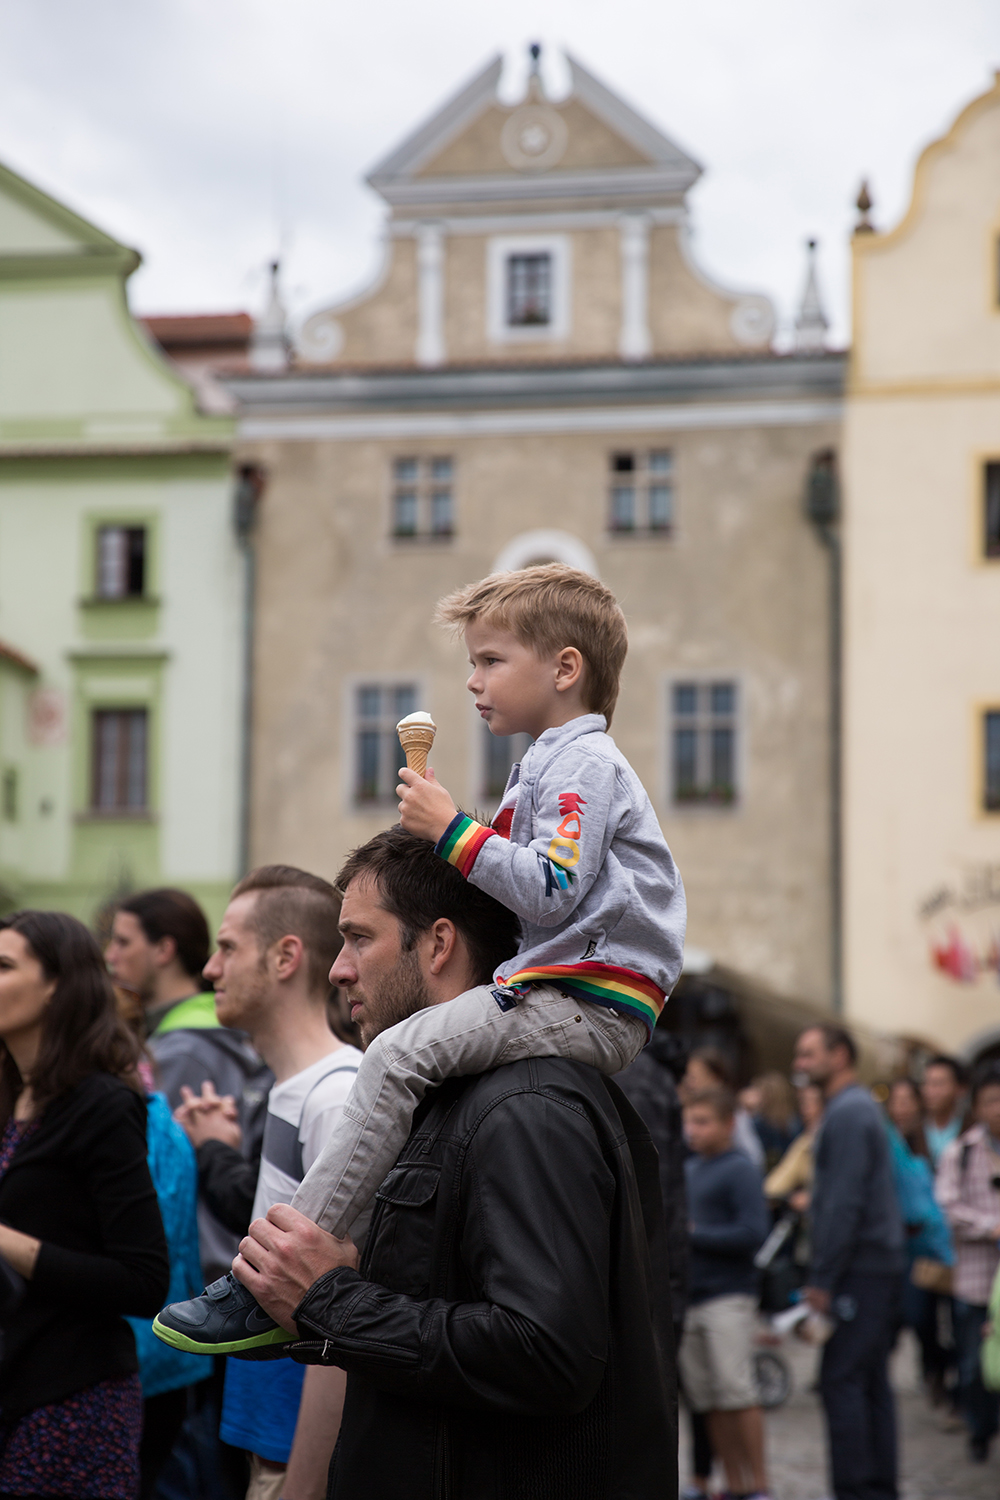 A documentary photograph of a child eating an ice cream cone on his dad's shoulders during a festival in Cesky Krumlov, Czech Republic